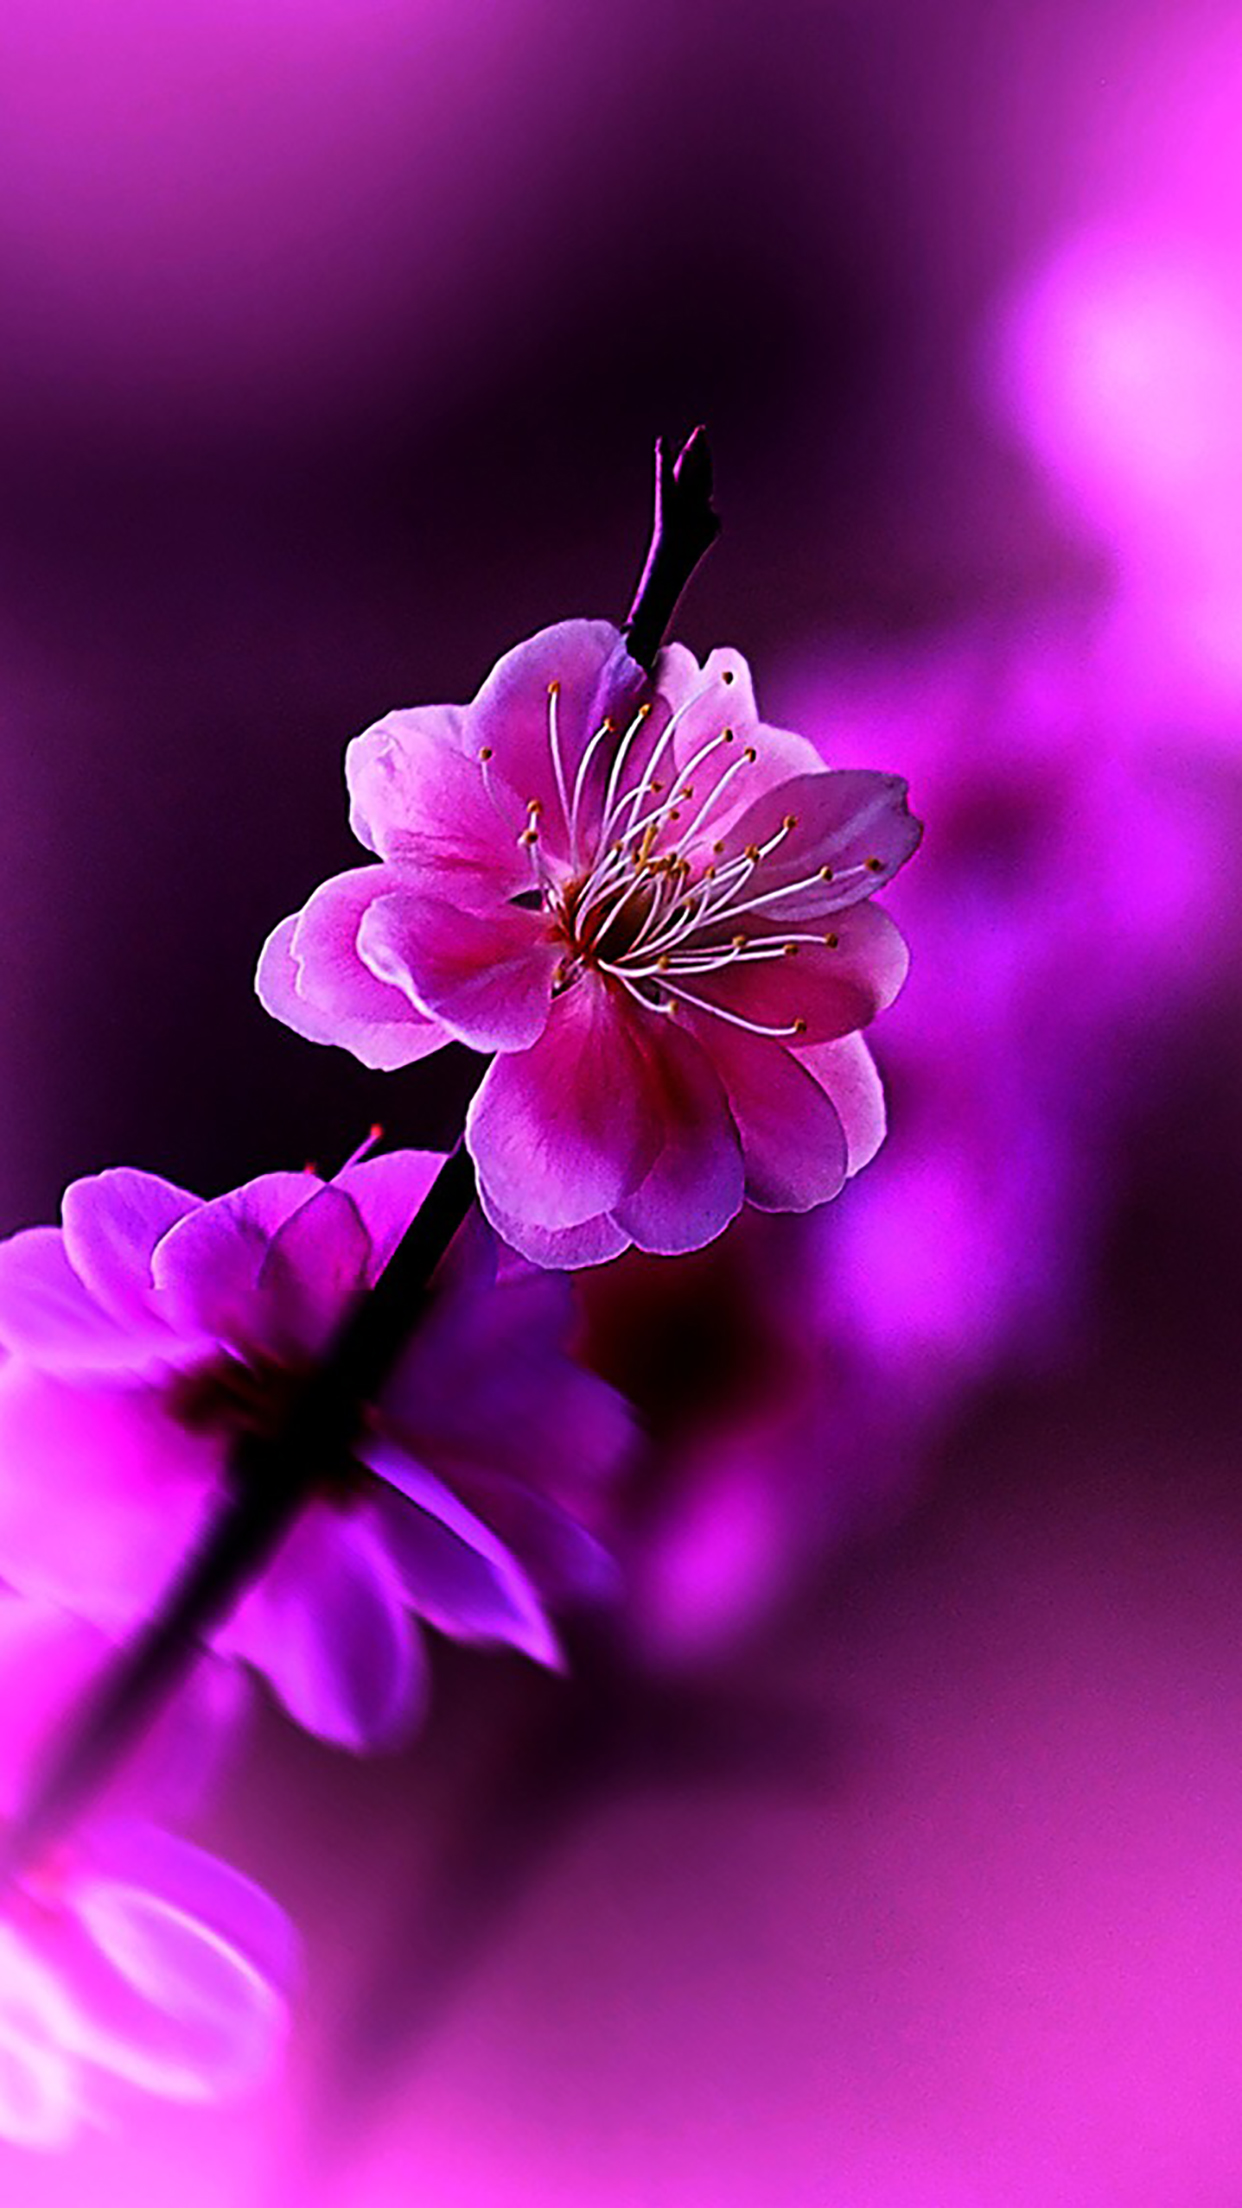 Flowers Violet 3Wallpapers iPhone Parallax Flowers : Violet